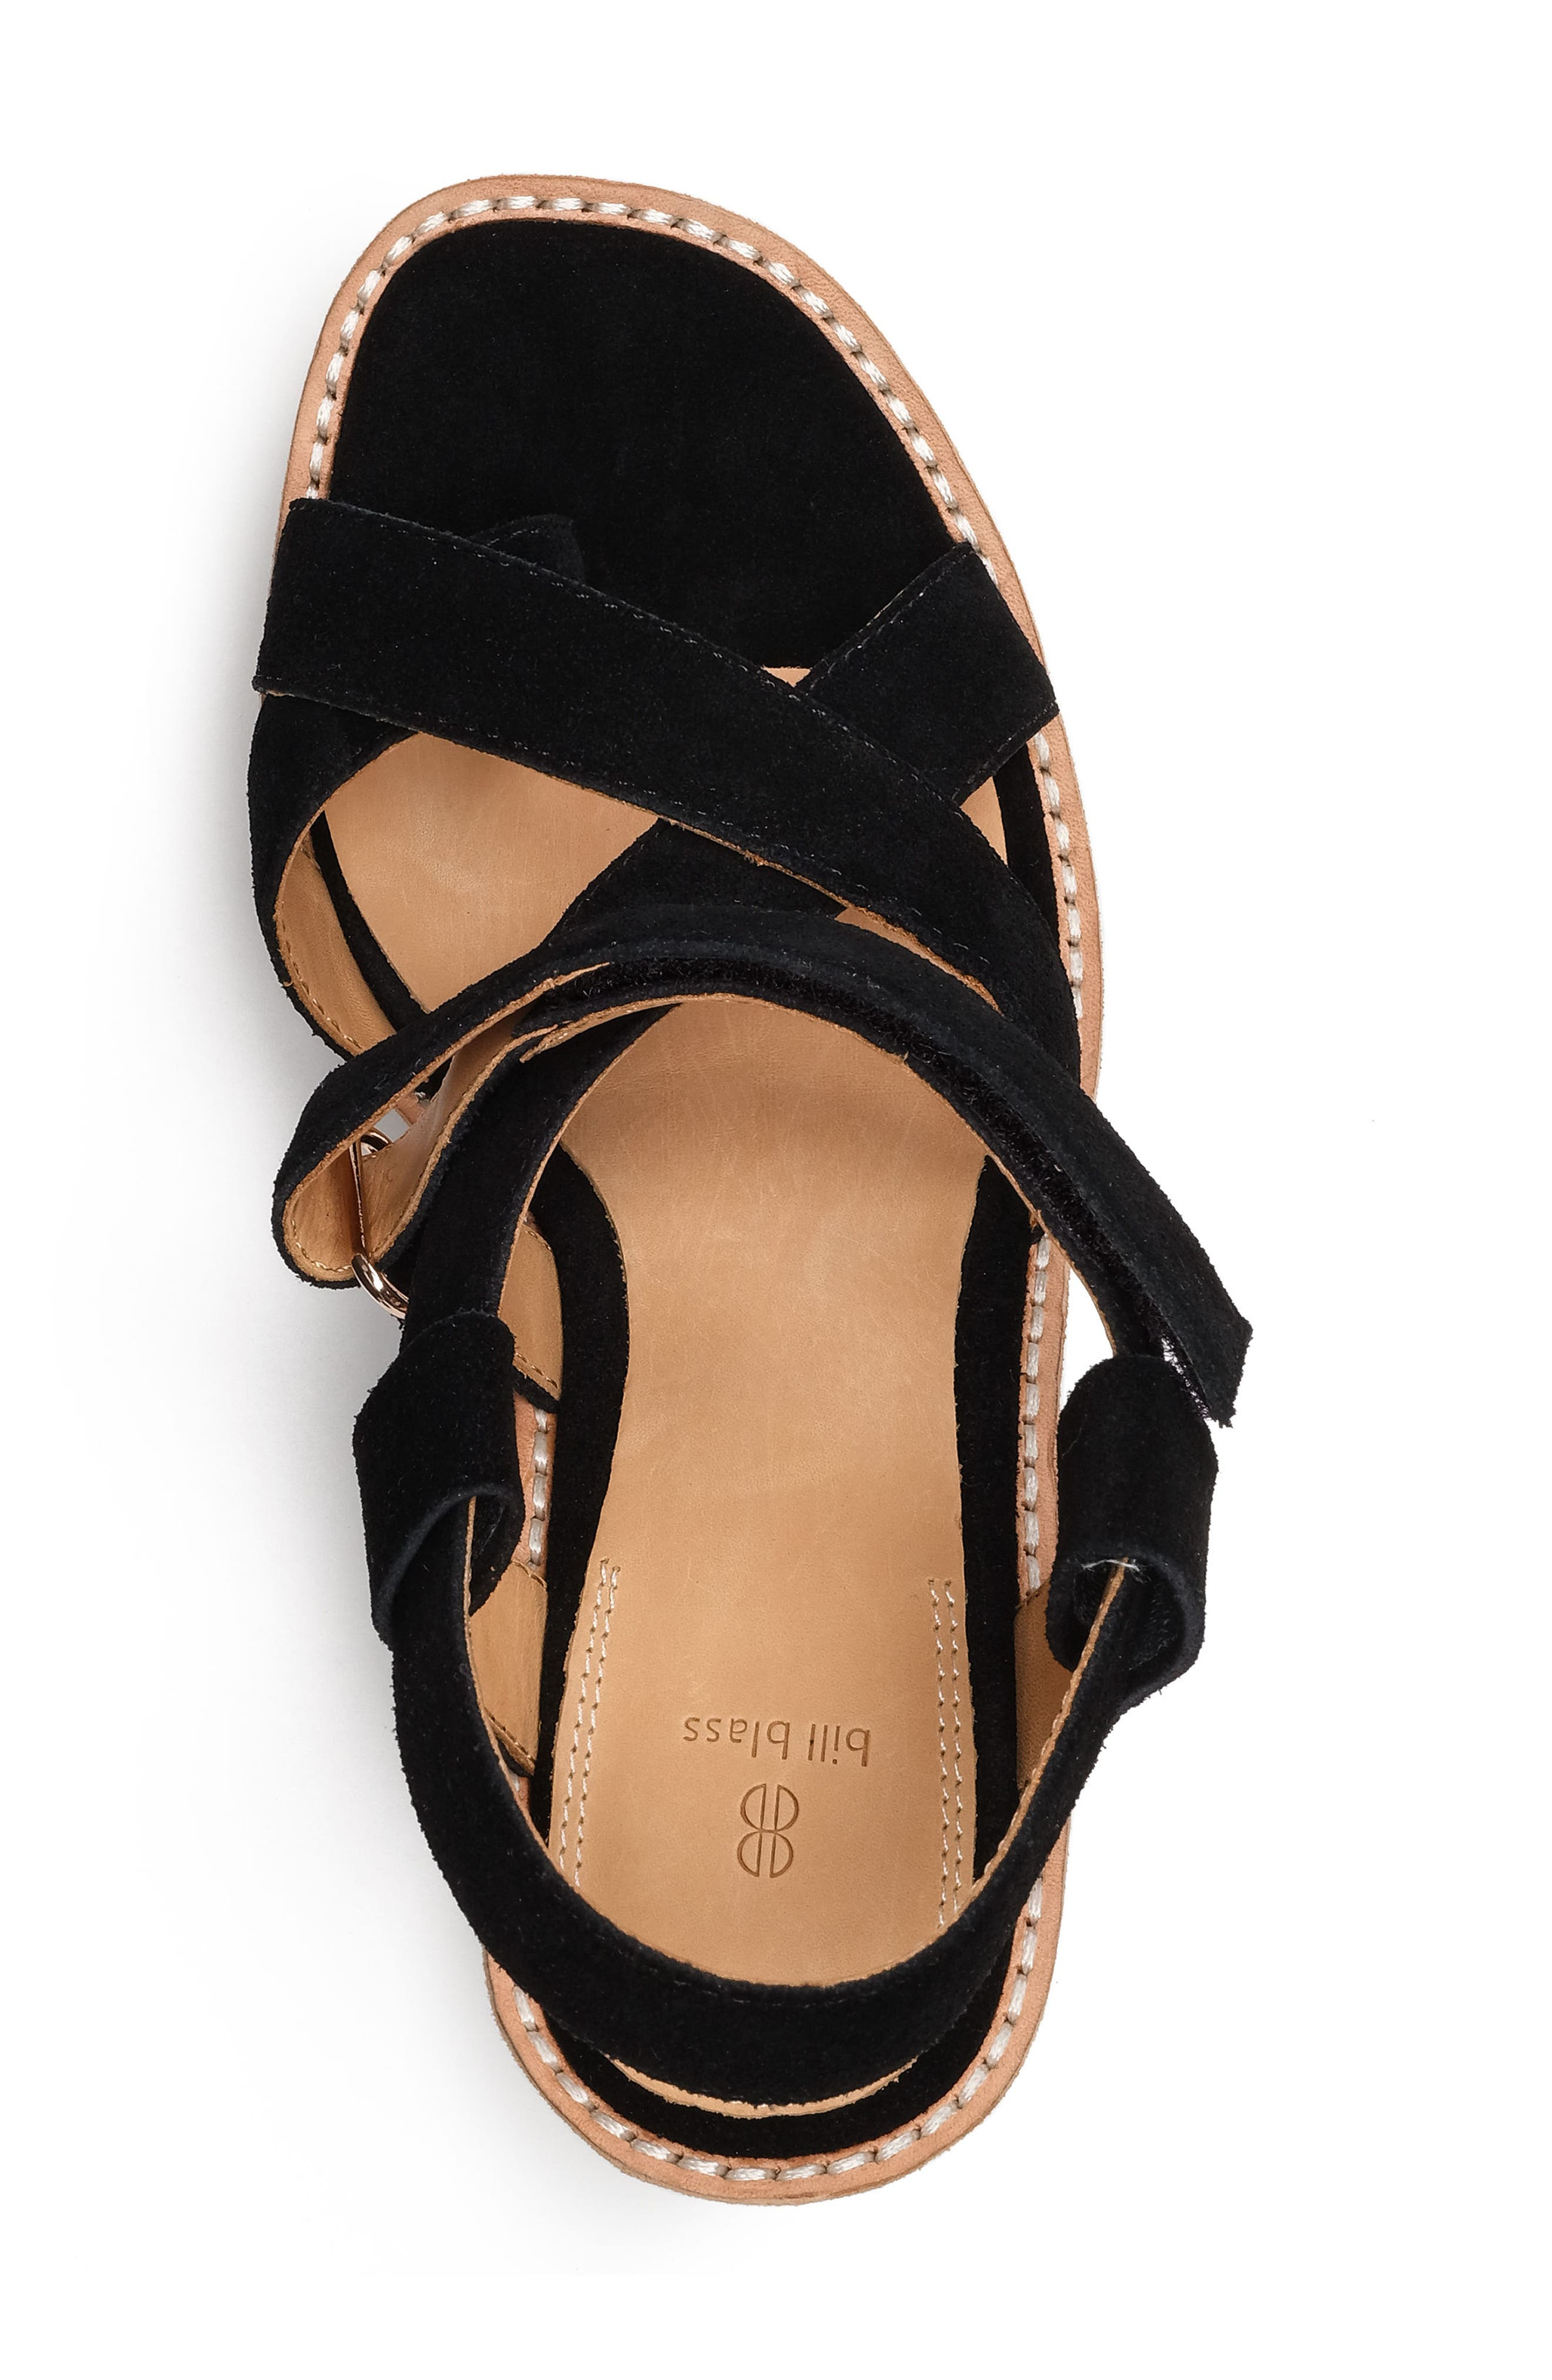 Rae Strappy Wedge Sandal,                             Alternate thumbnail 4, color,                             001